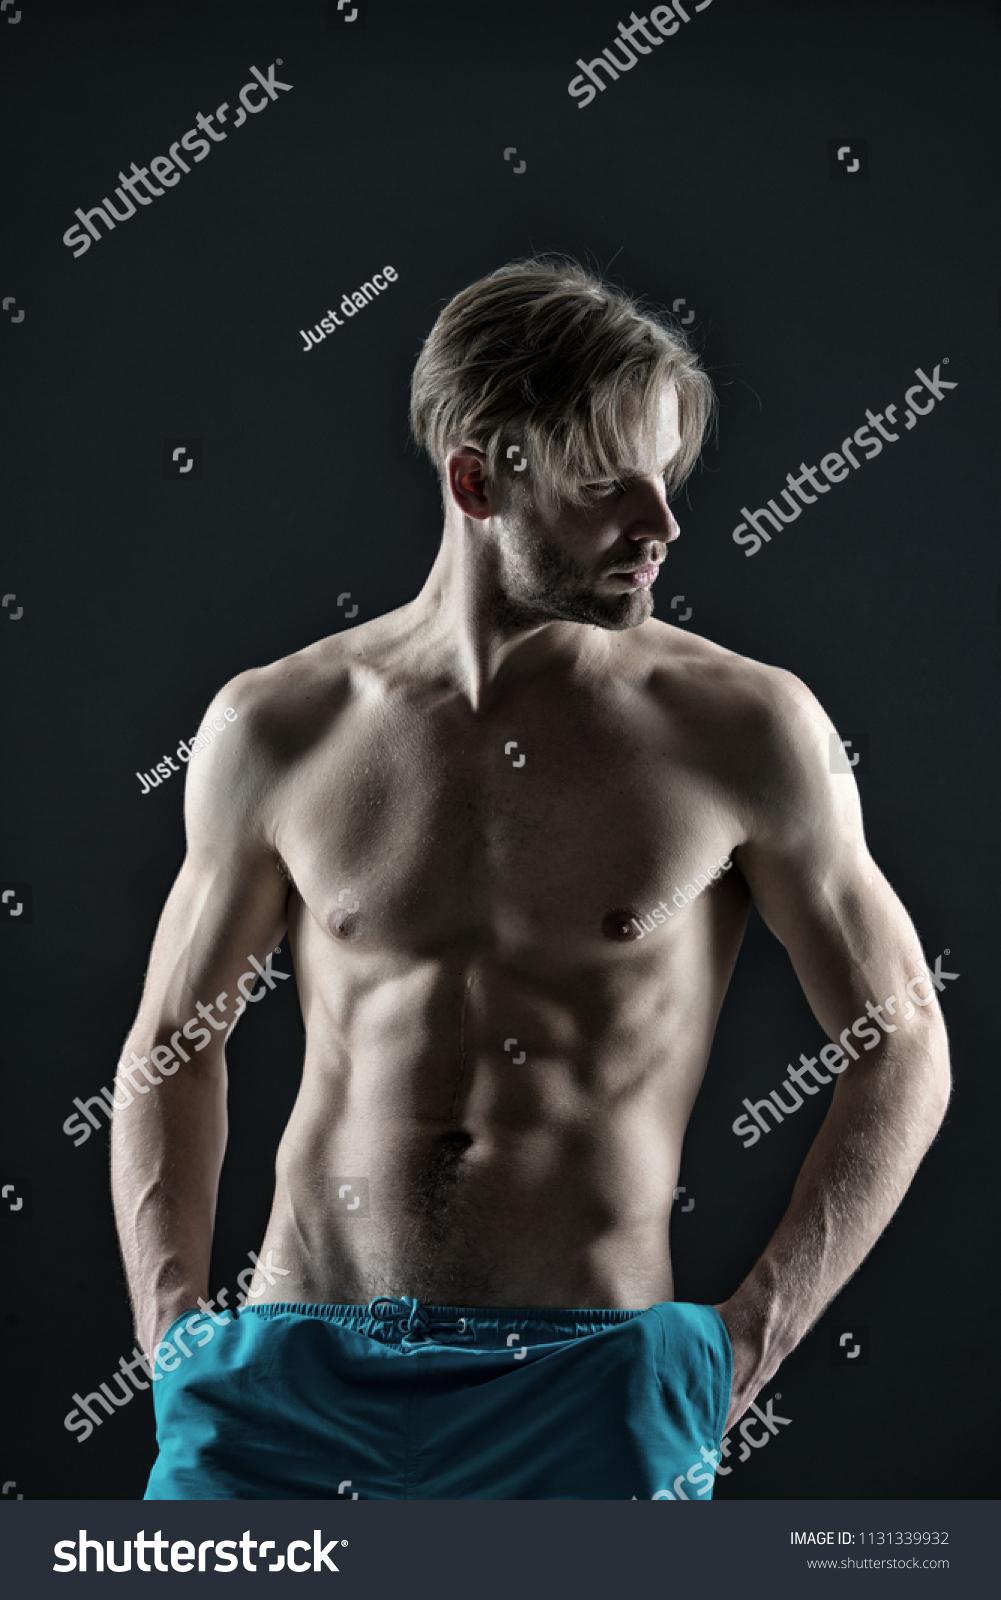 Man Six Pack Ab Muscles Training Stock Photo Edit Now 1131339932